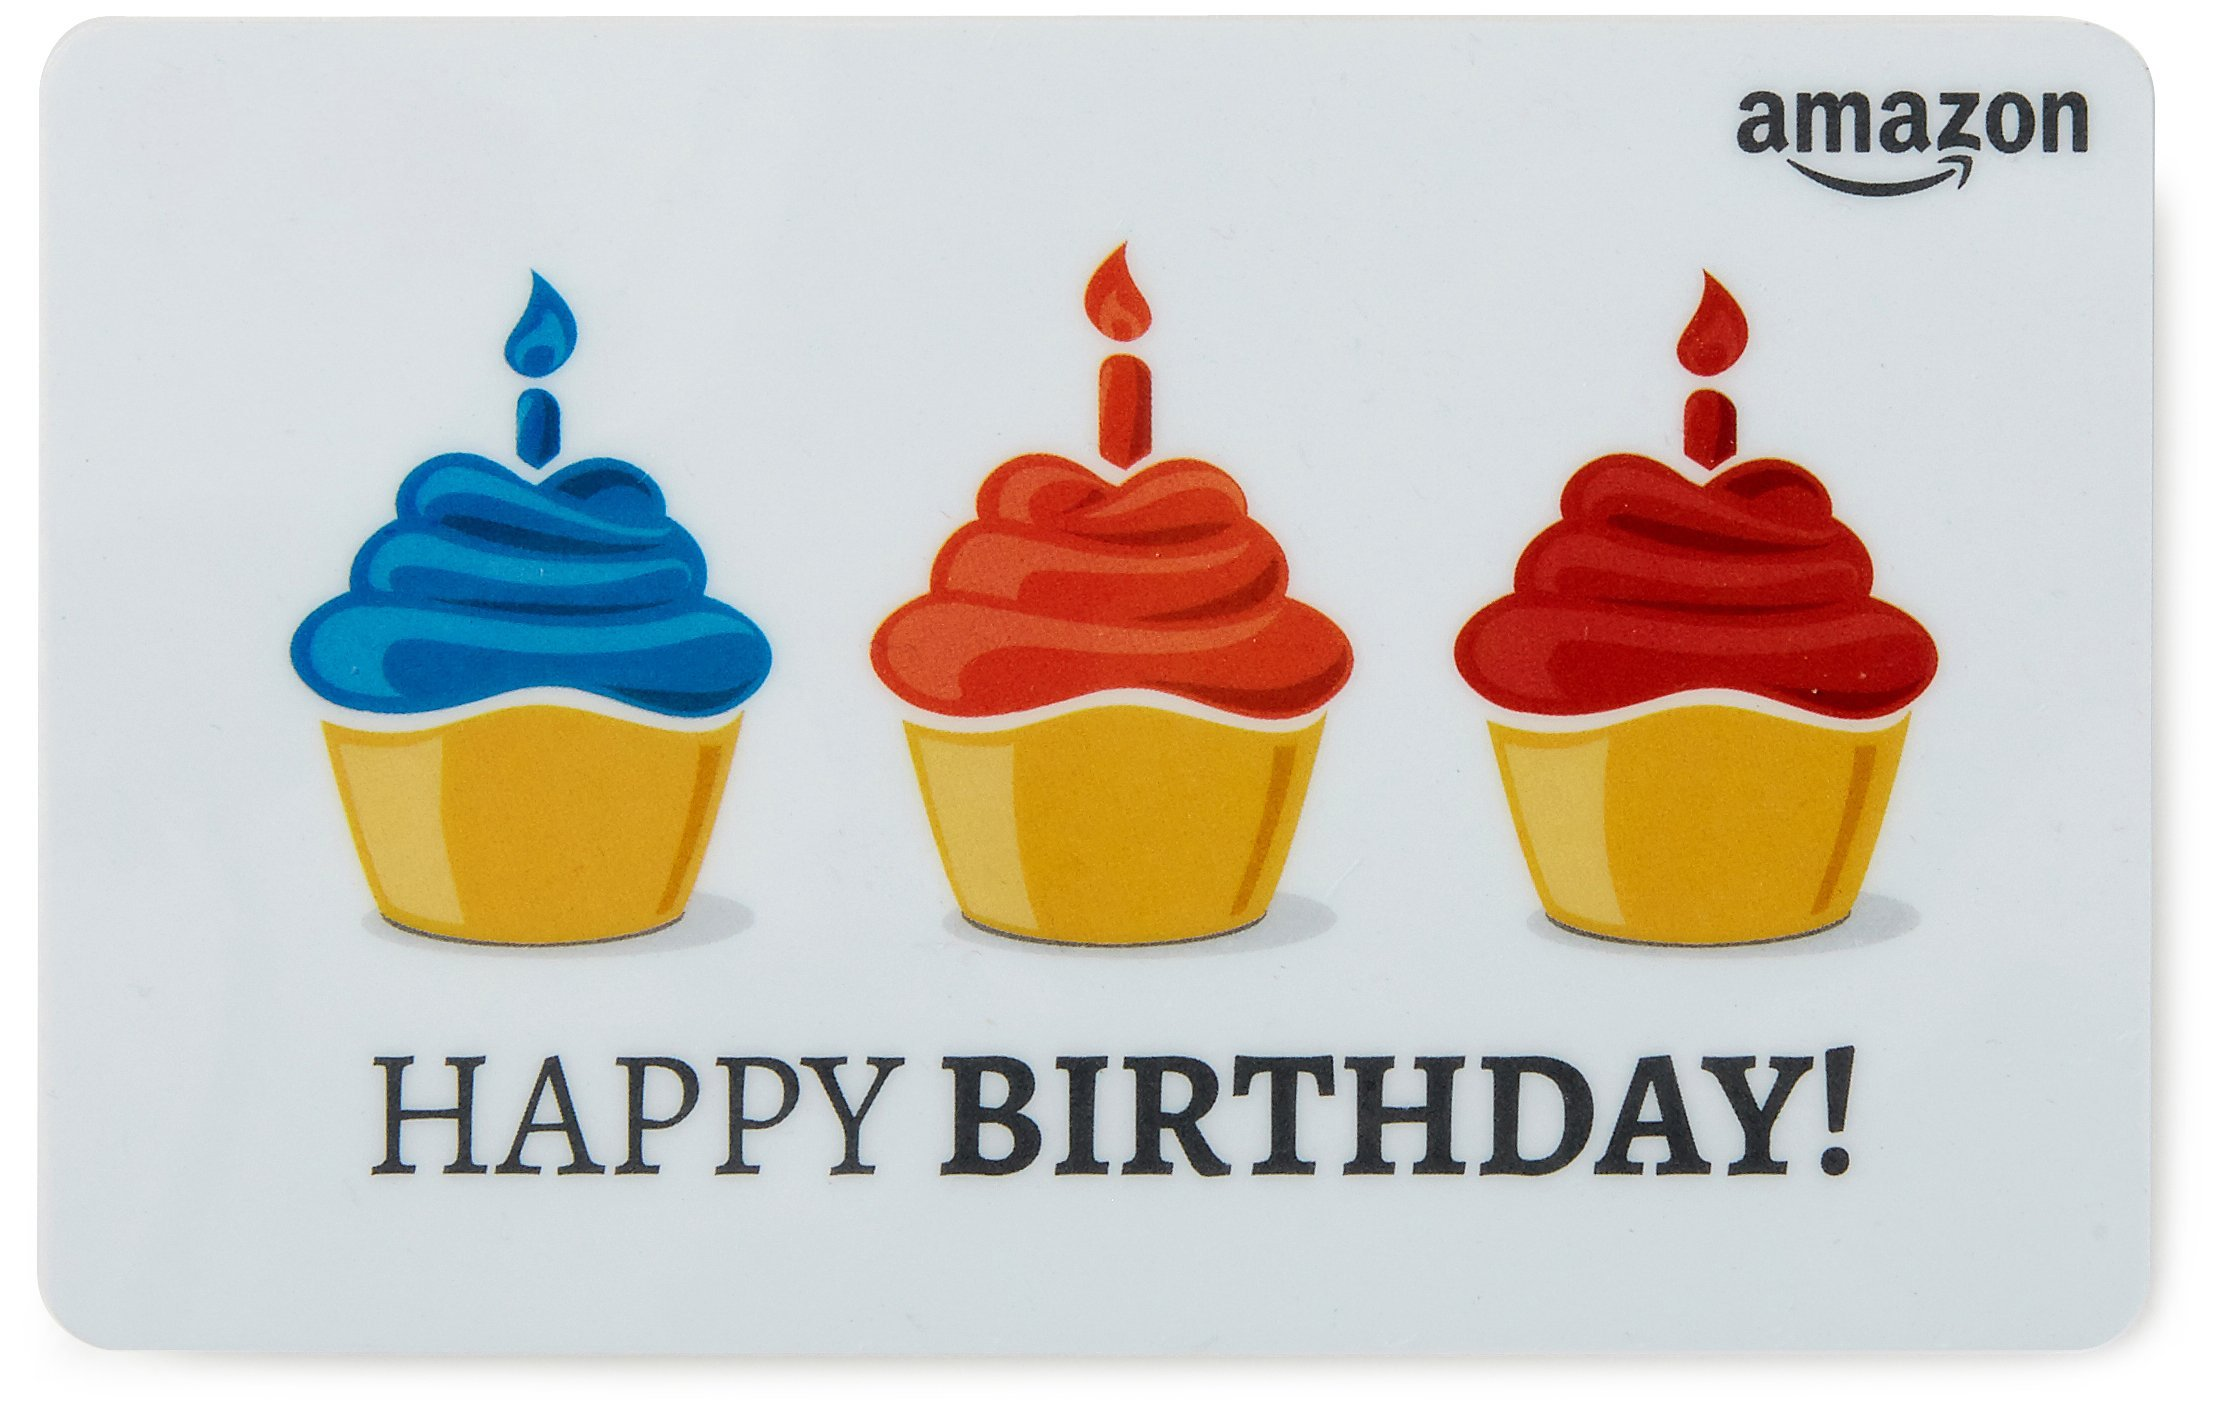 Amazon Gift Card In A Greeting Birthday Cupcake Design Departments Cards